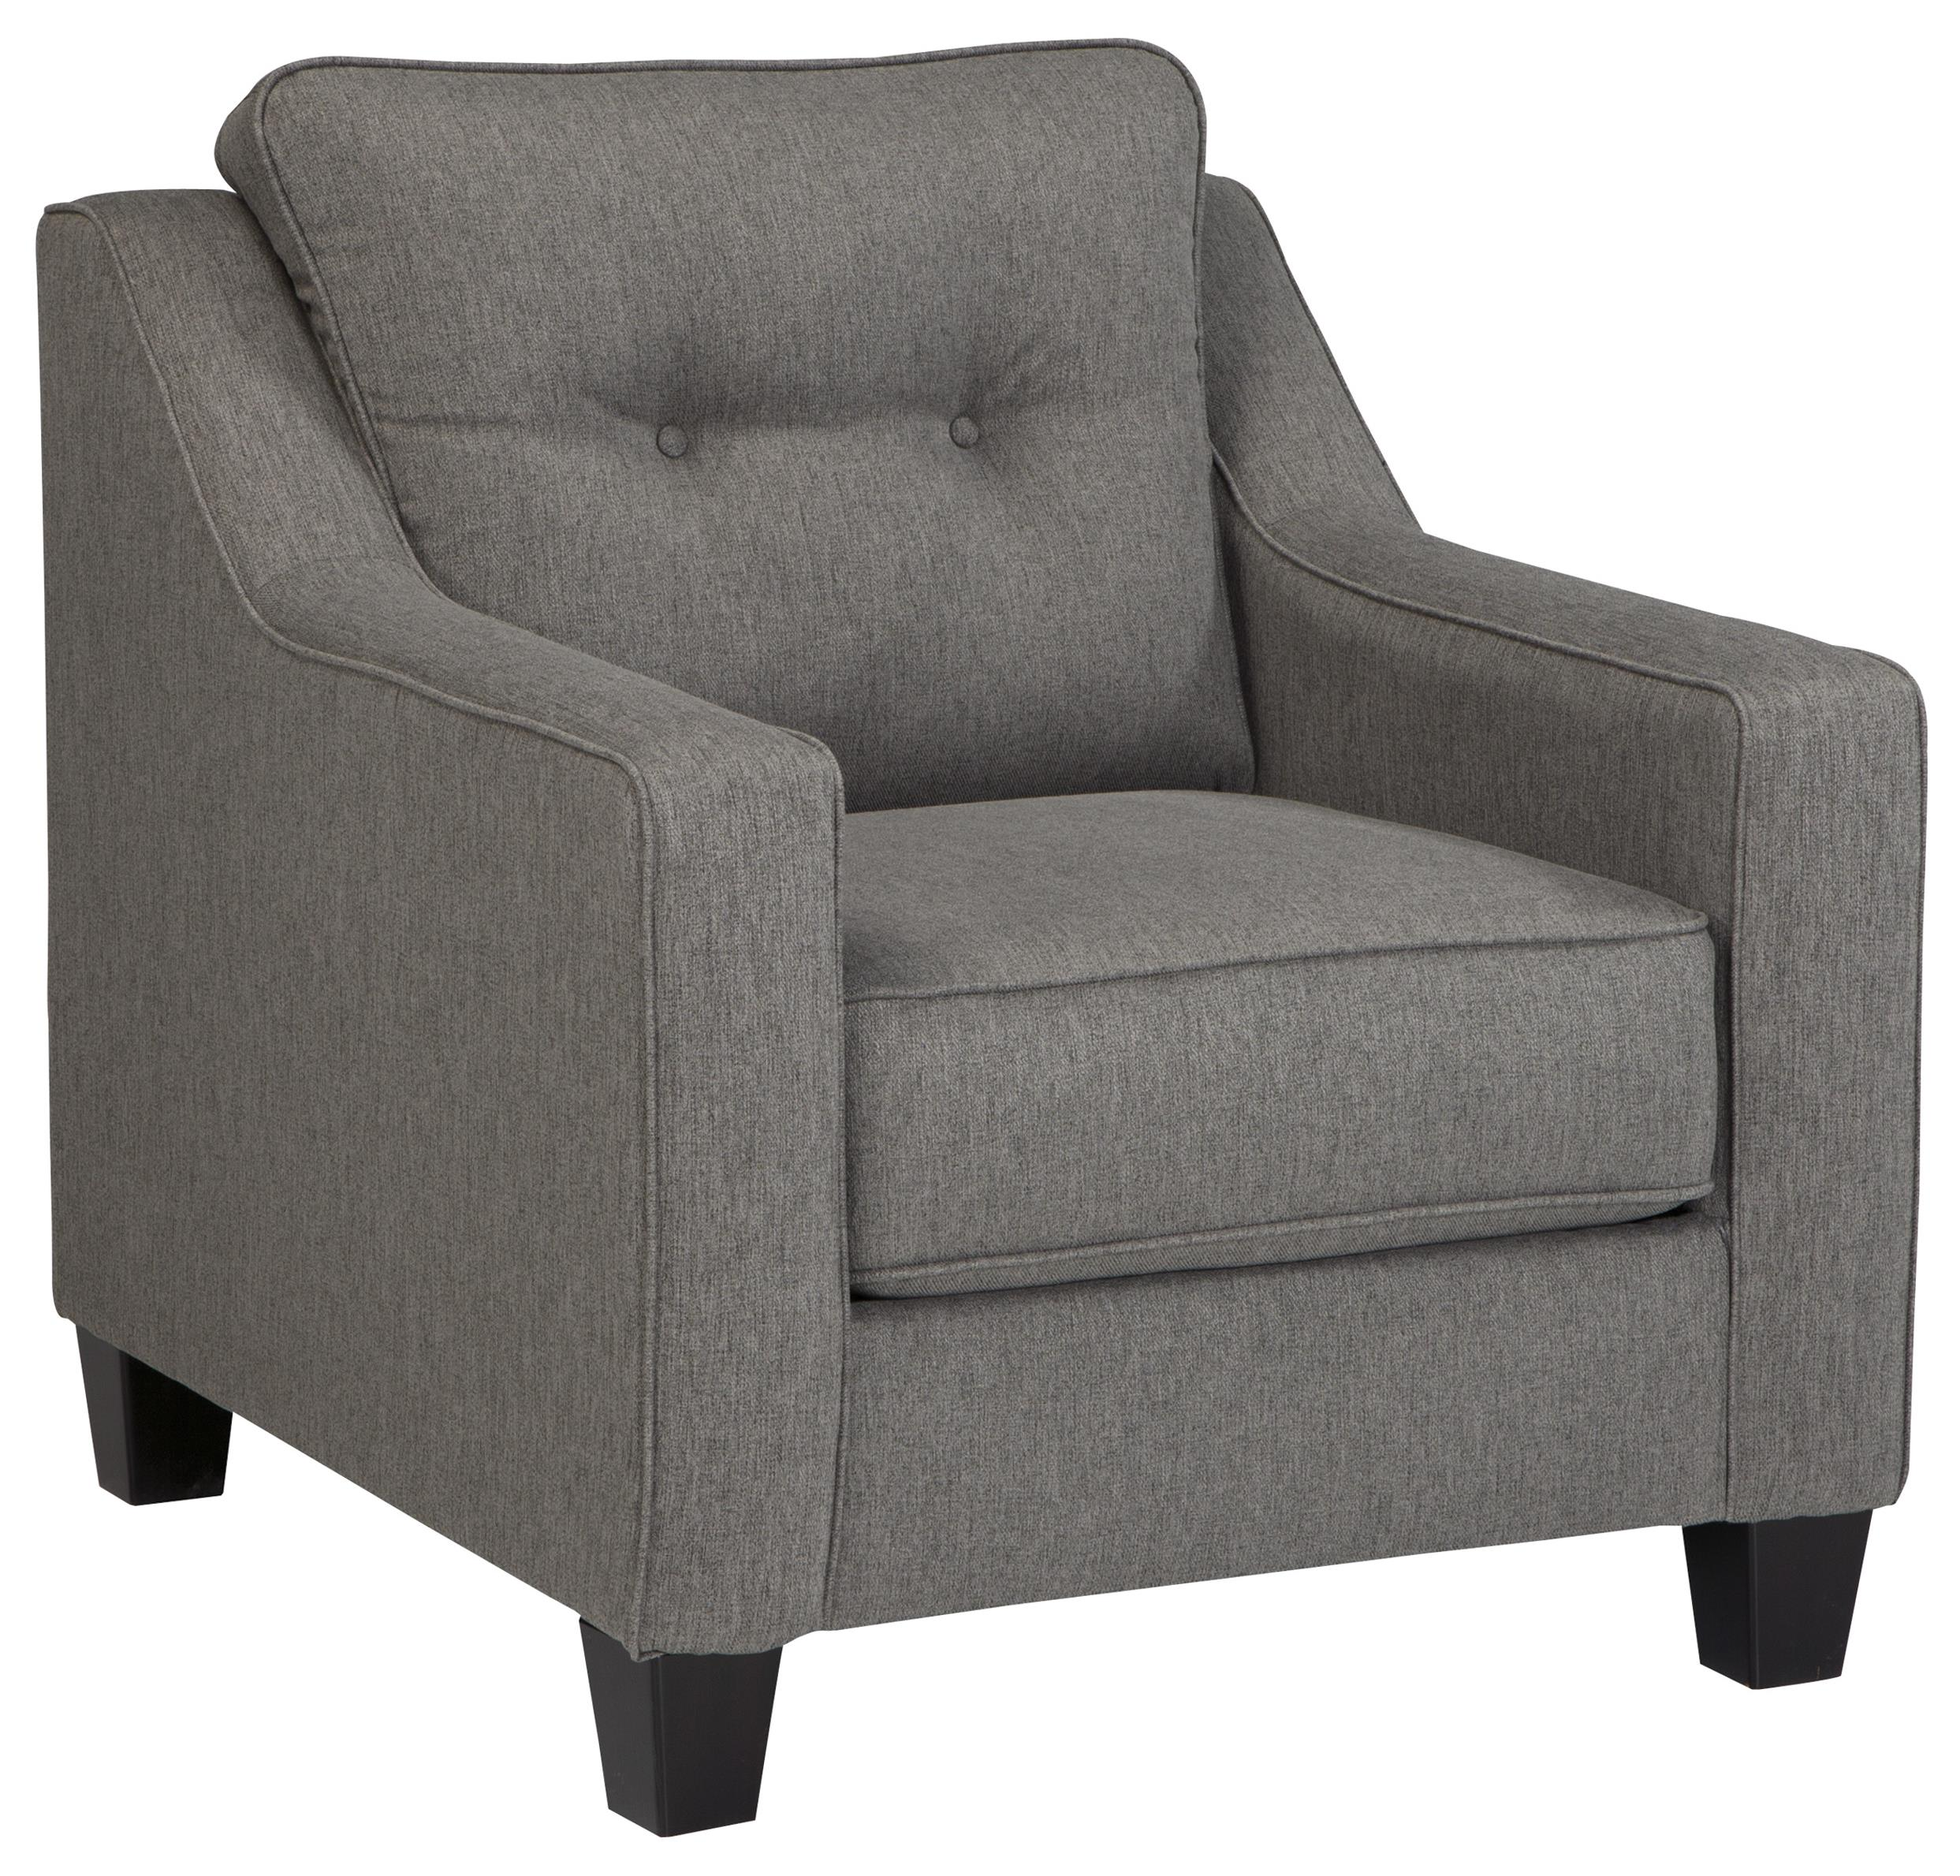 Brindon Chair by Benchcraft at Miller Waldrop Furniture and Decor